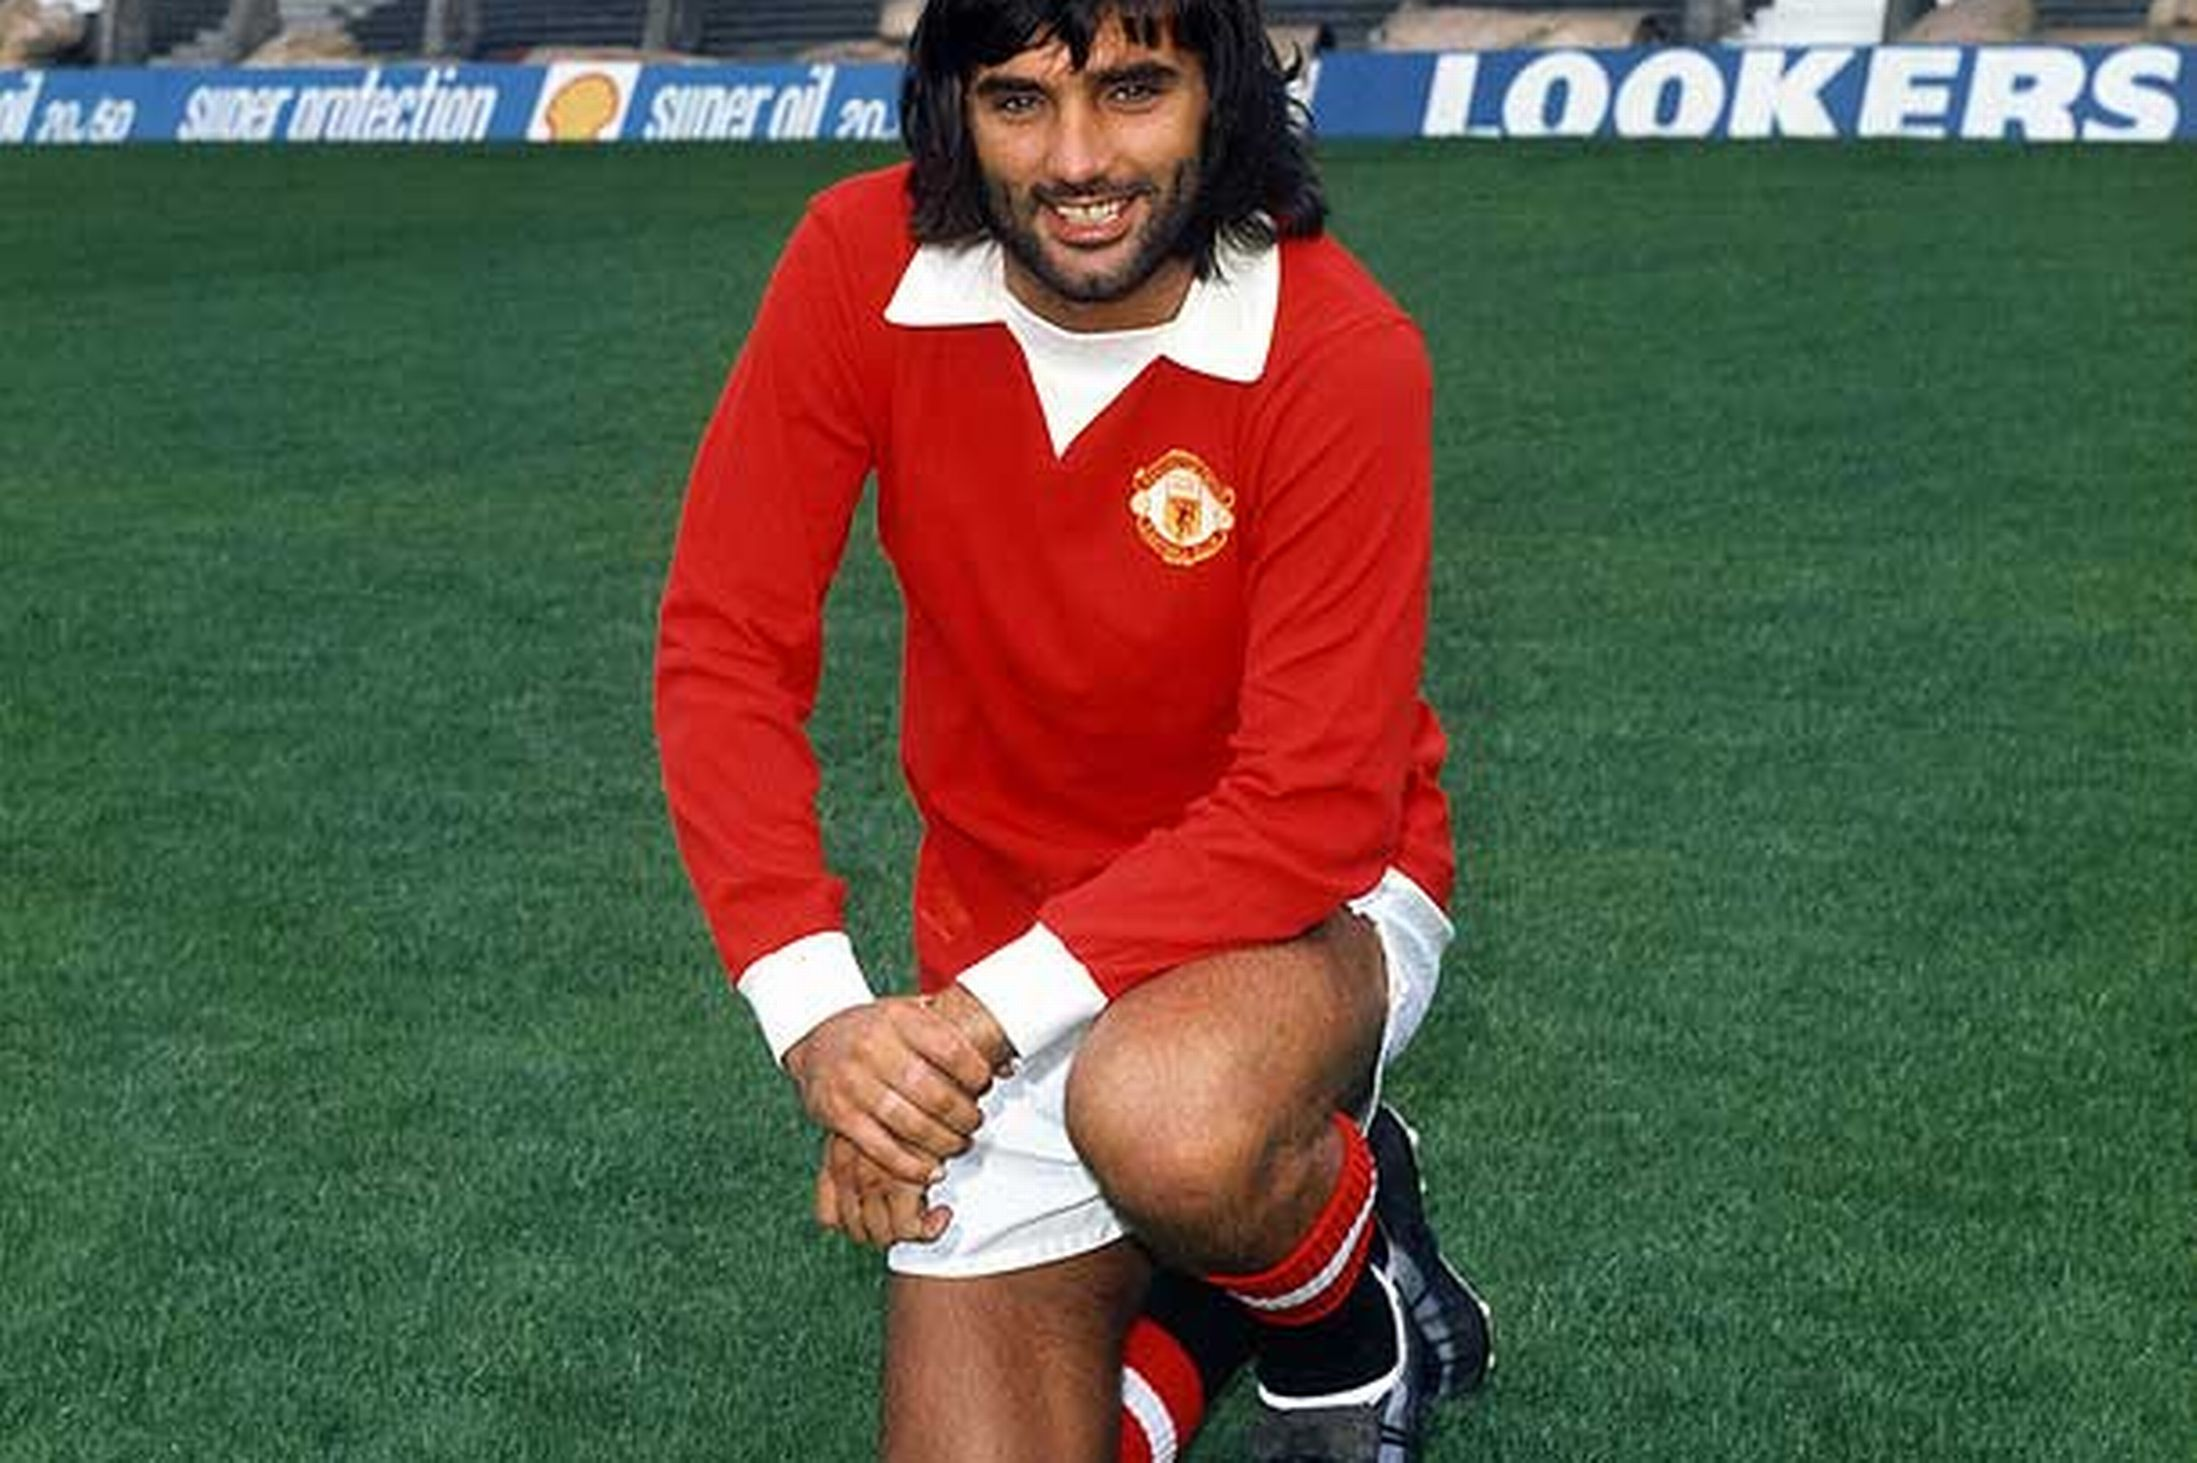 2005 – Death of George Best He was a Northern Irish professional